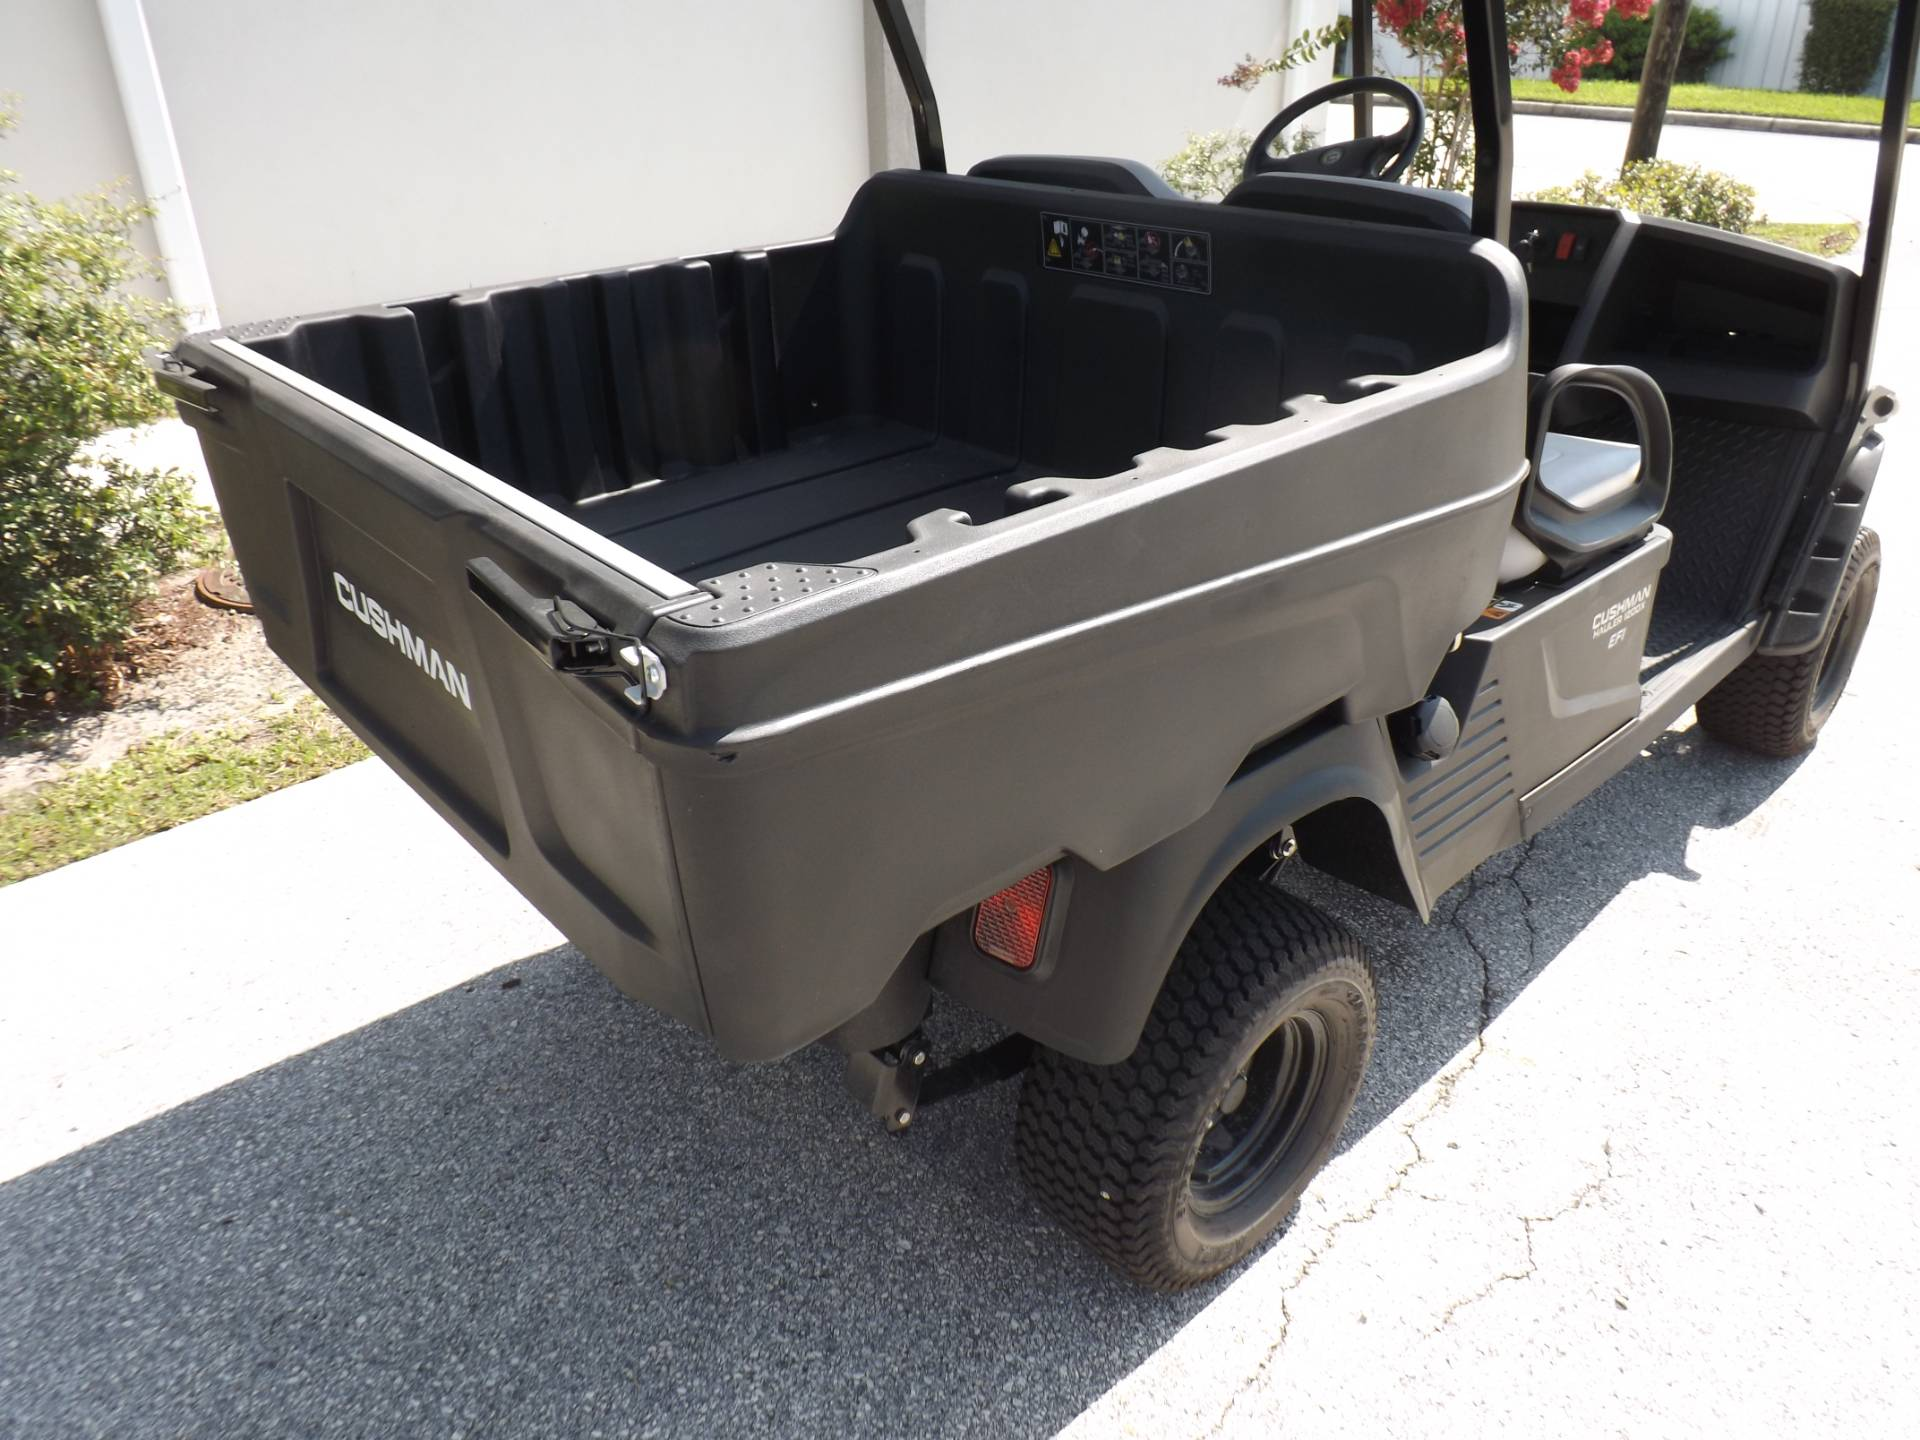 2020 Cushman Hauler 1200X Gas in Lakeland, Florida - Photo 12